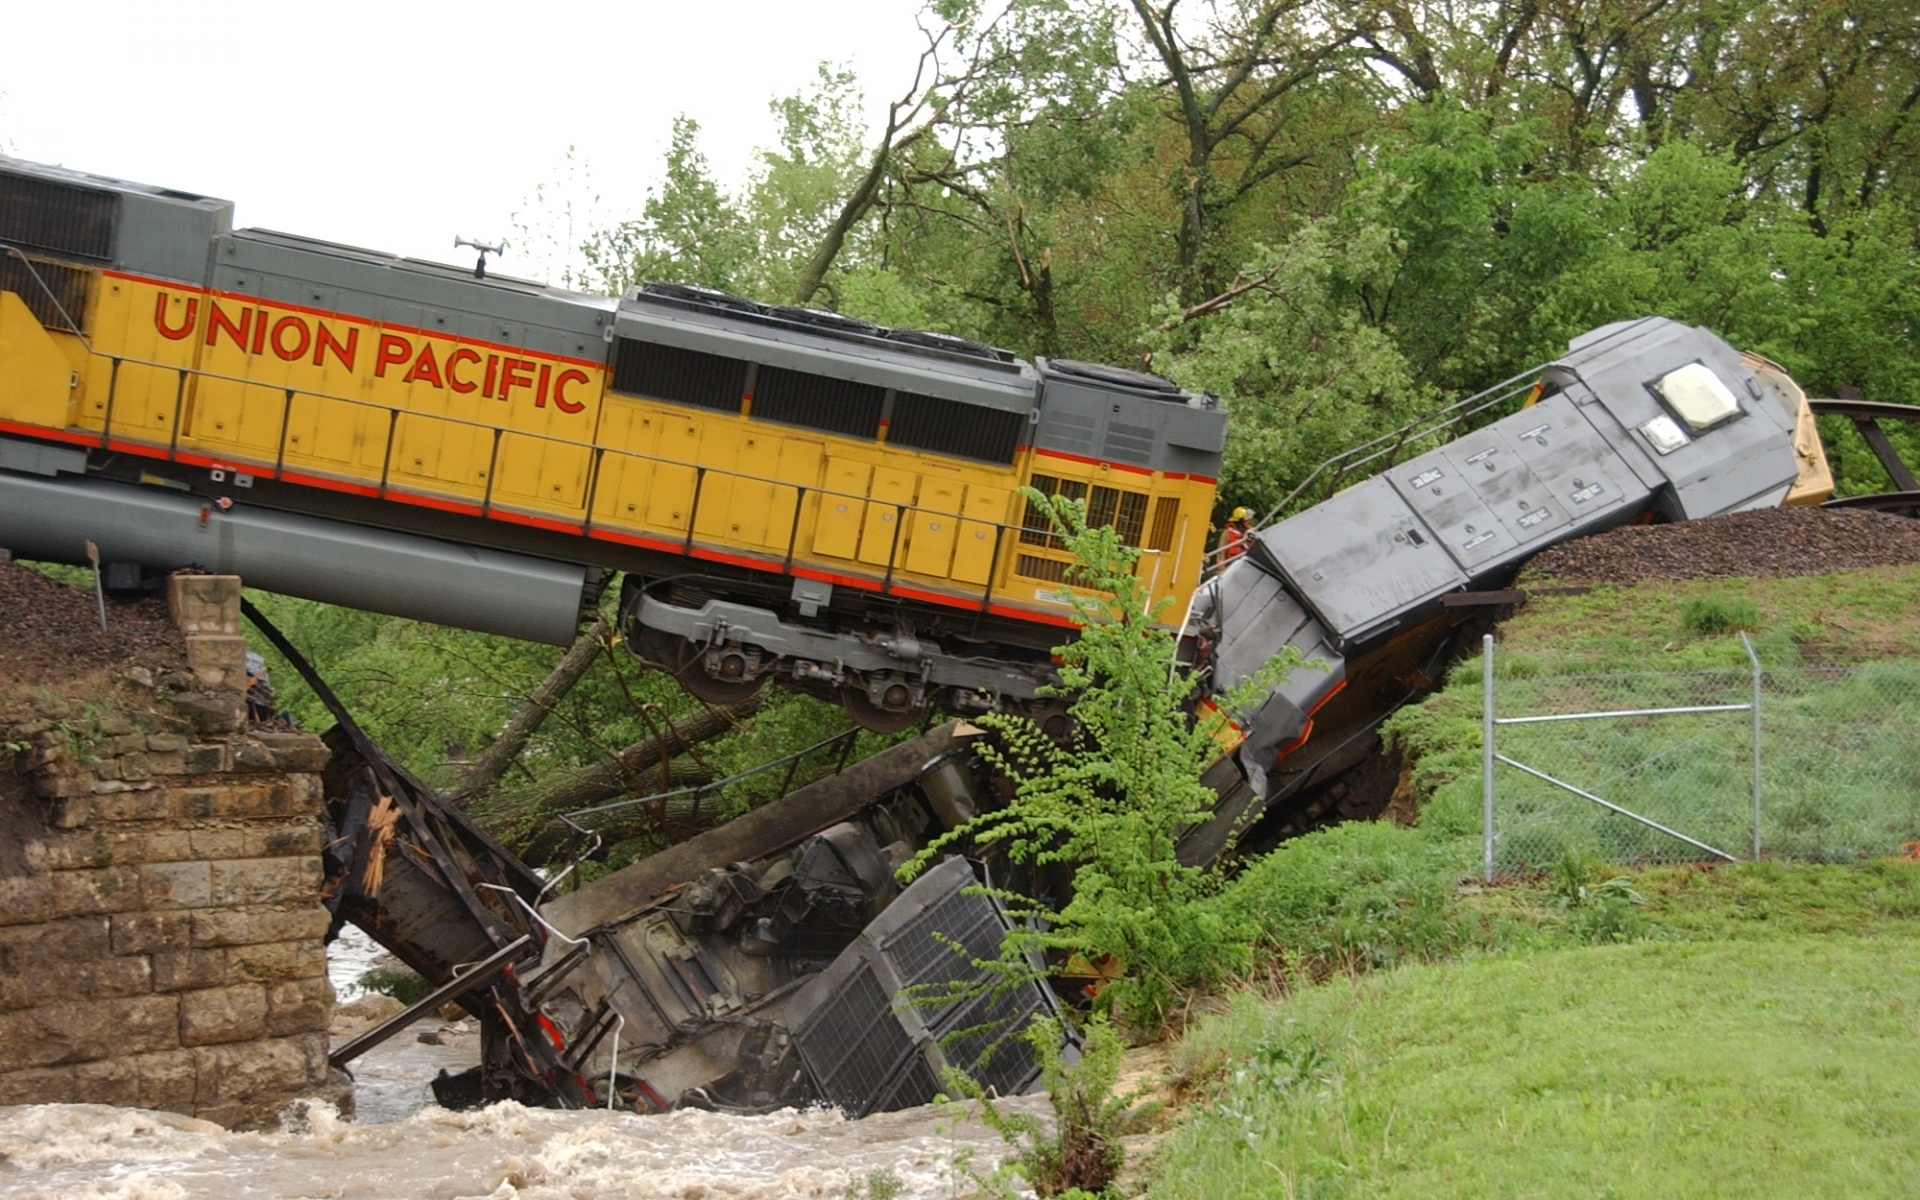 vehicles trains railroad engine locomotive accident wreck ruindestruction architecture bridges trees rivers water